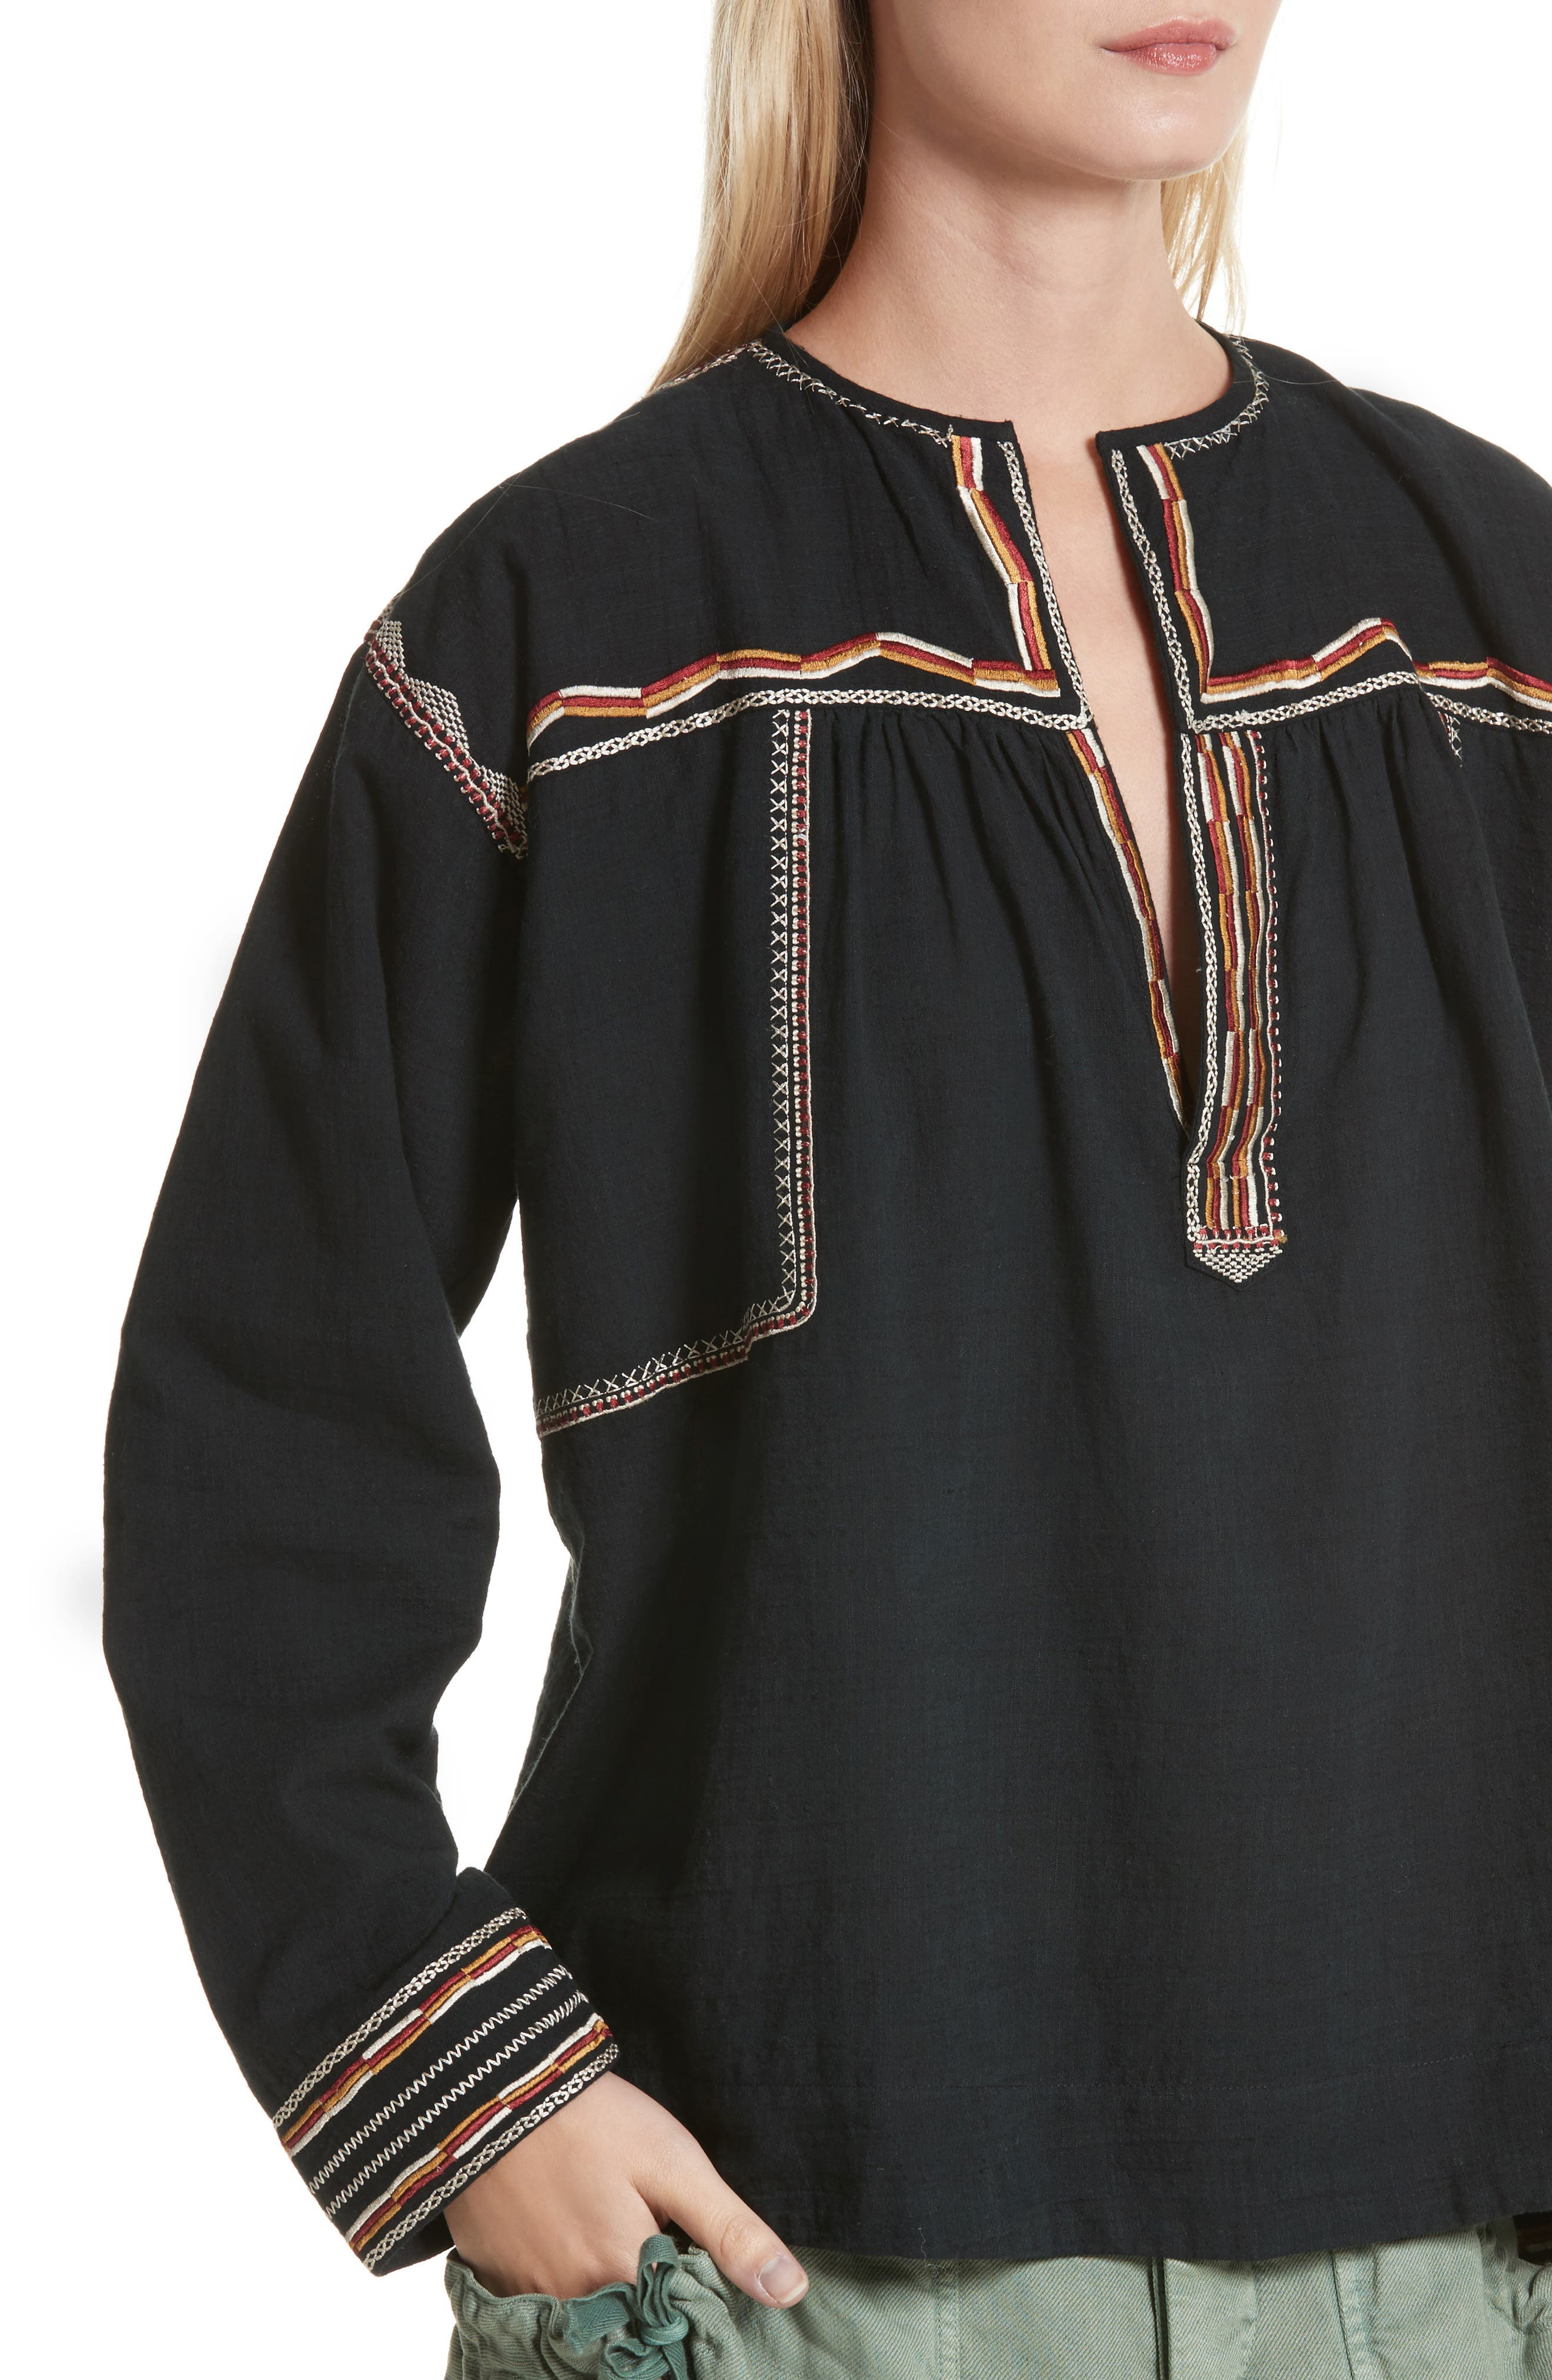 Isabel Marant Étoile Blicky Embroidered Top,                             Alternate thumbnail 4, color,                             Black